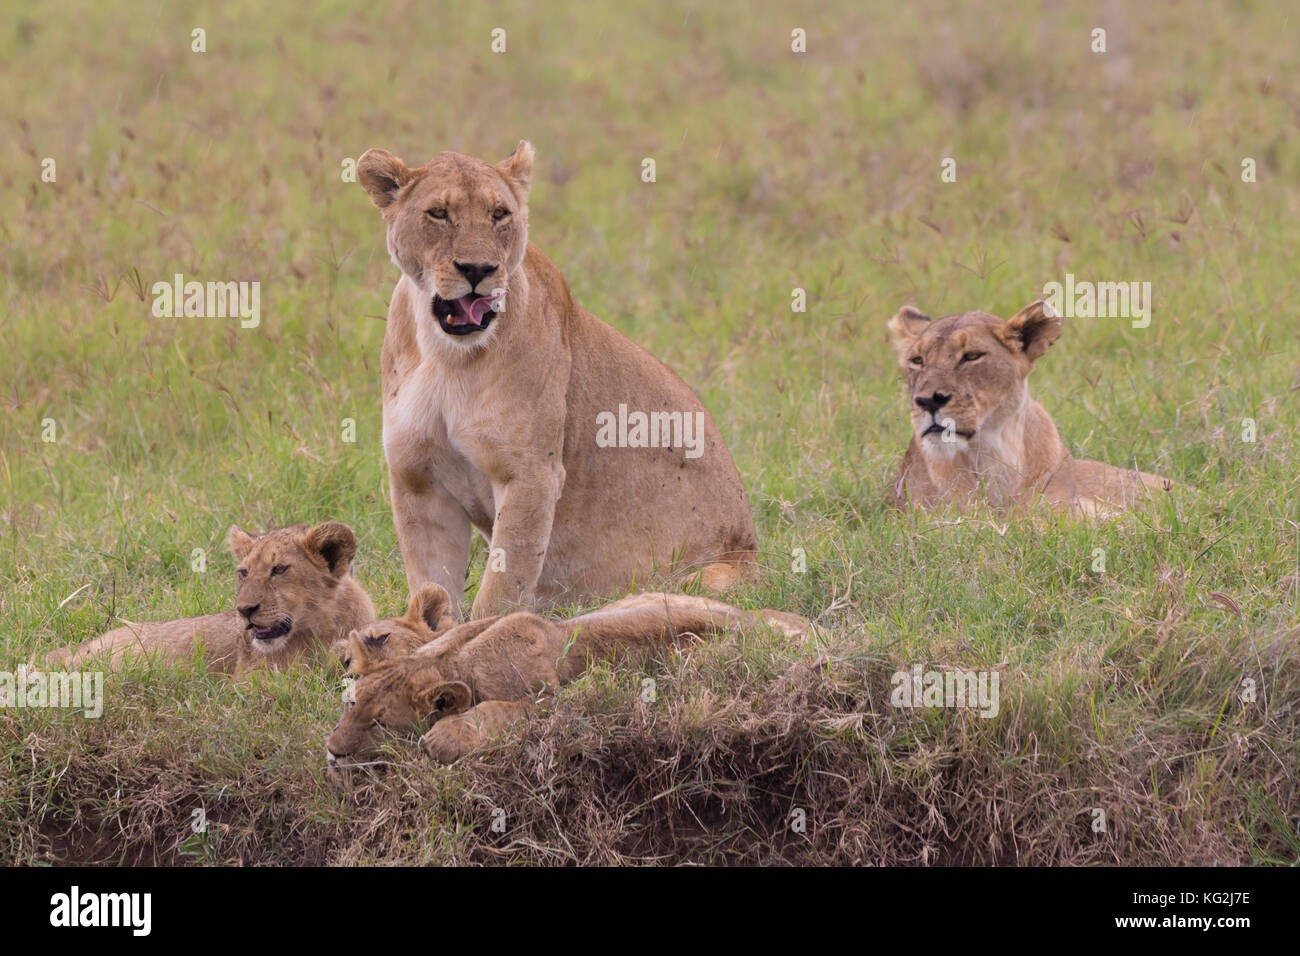 Lioness with her cubs in in Ngorongoro crater consrvation area, Tanzania, Africa. - Stock Image